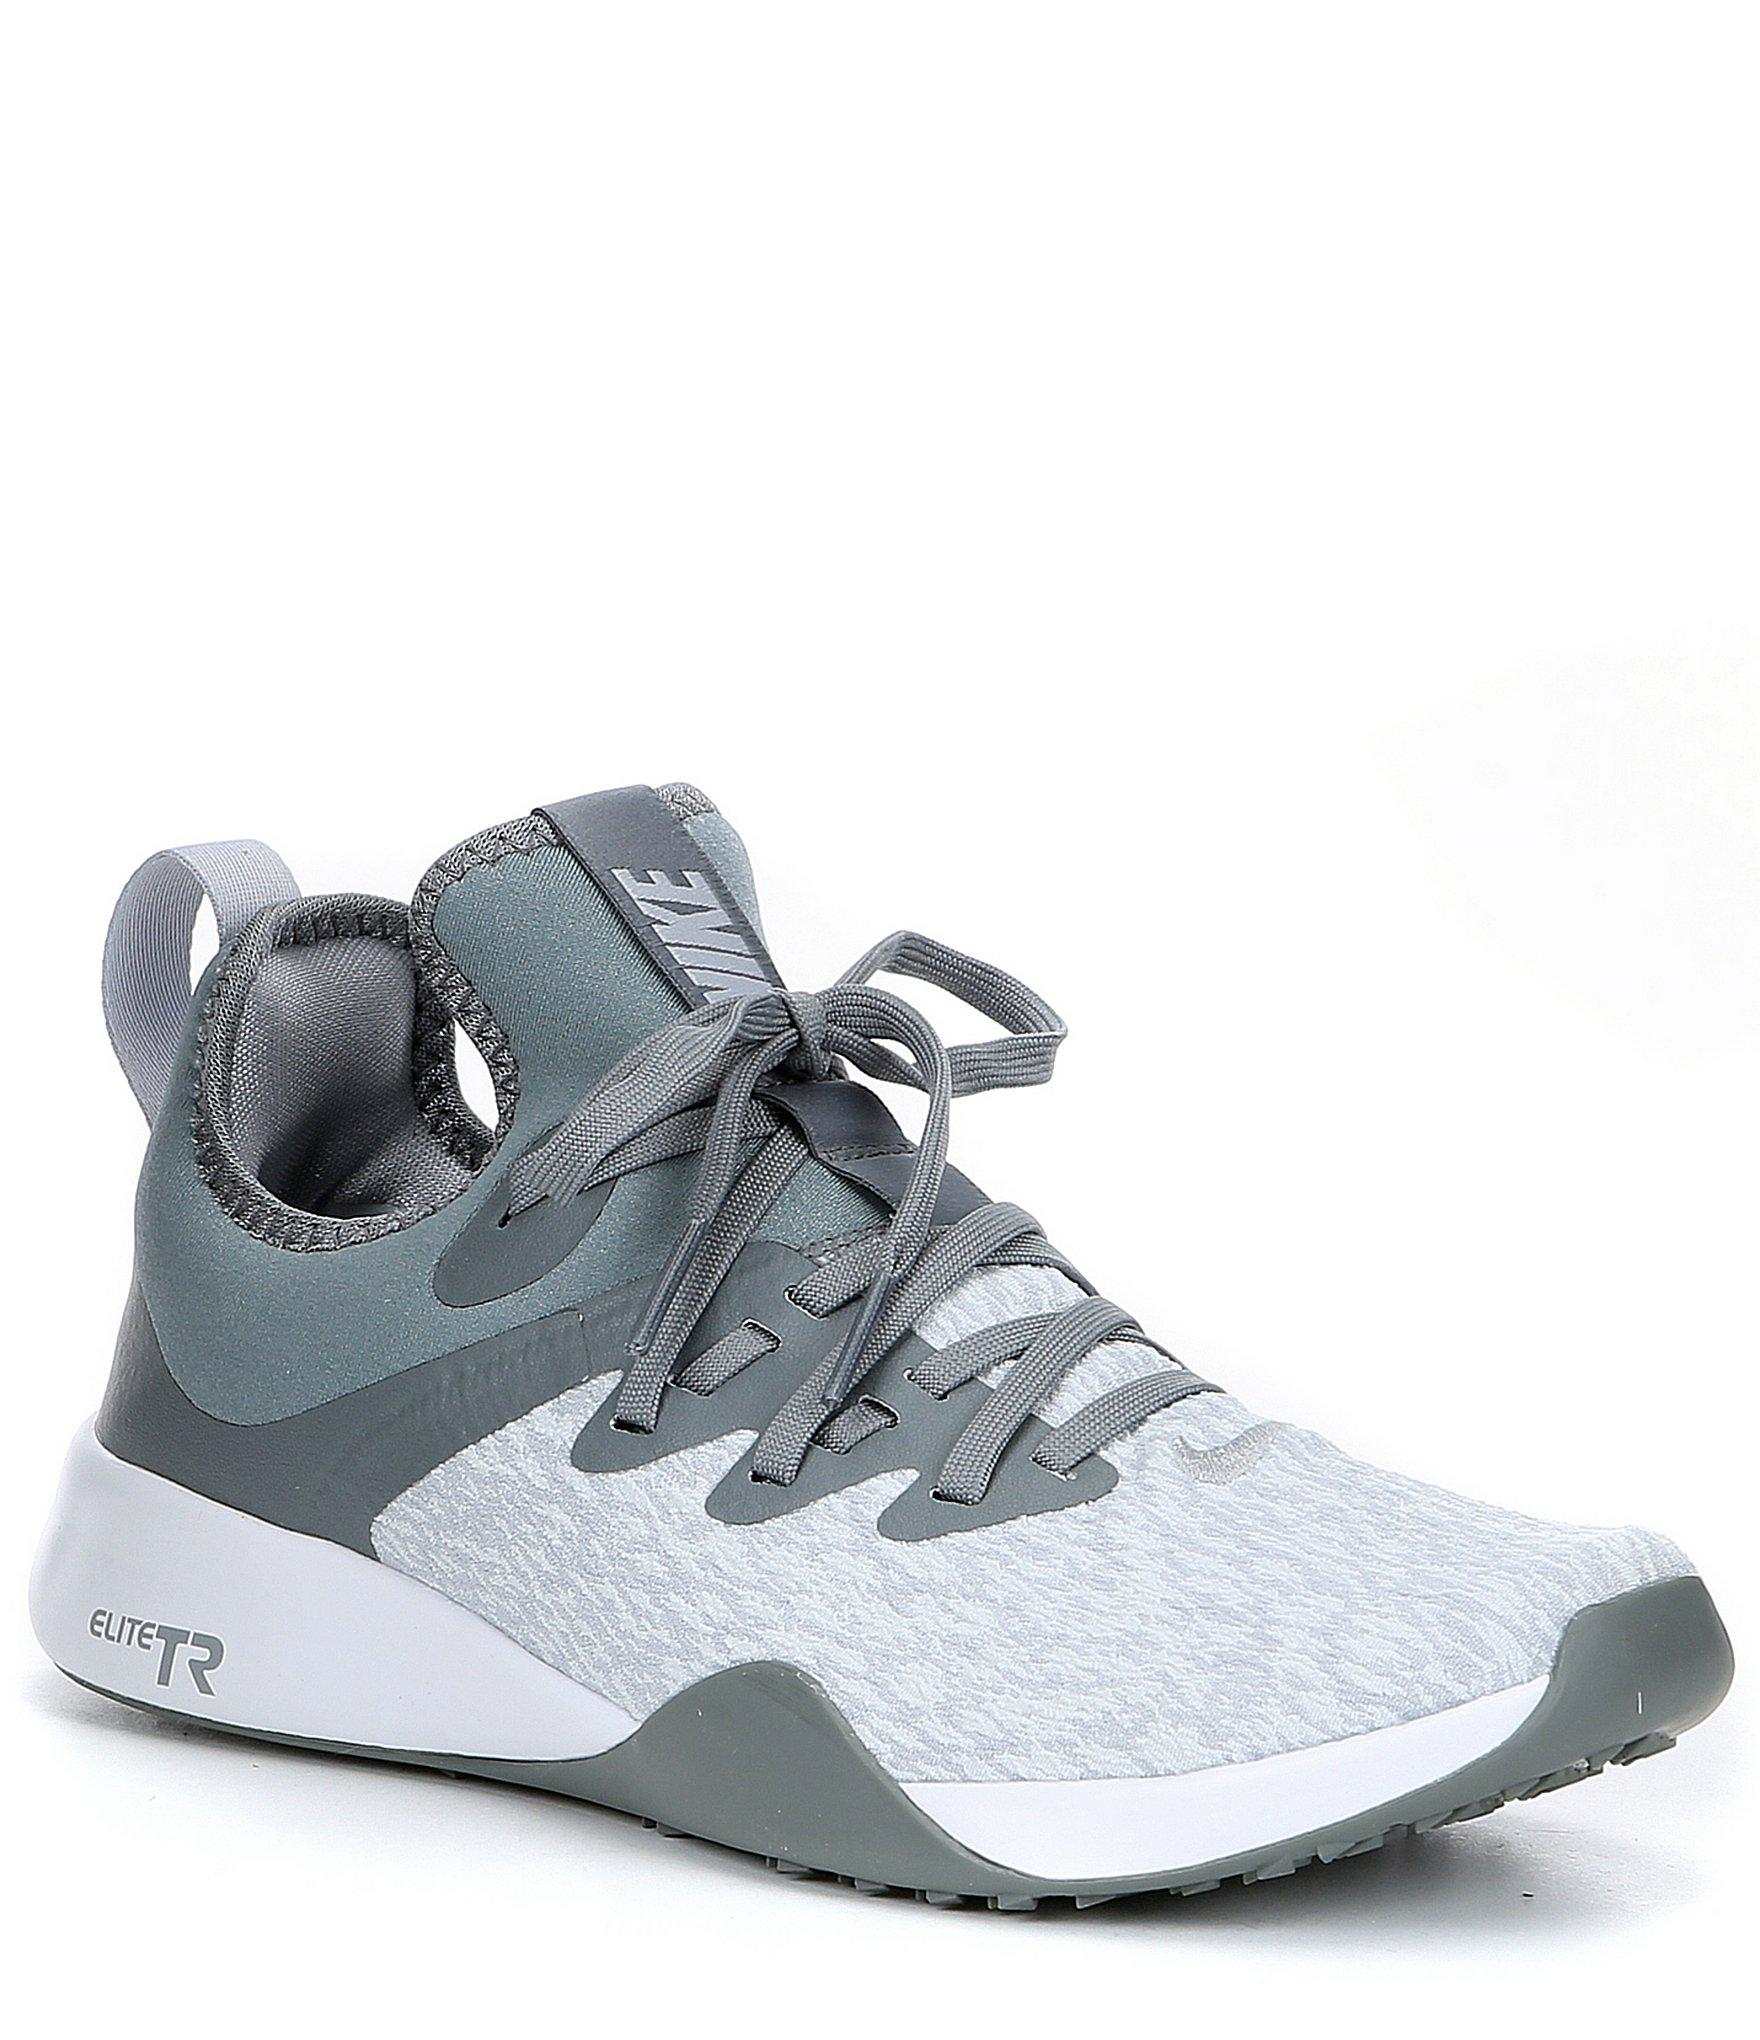 f3efc8a777280 Nike - Gray Women s Foundation Elite Tr Training Shoe - Lyst. View  fullscreen